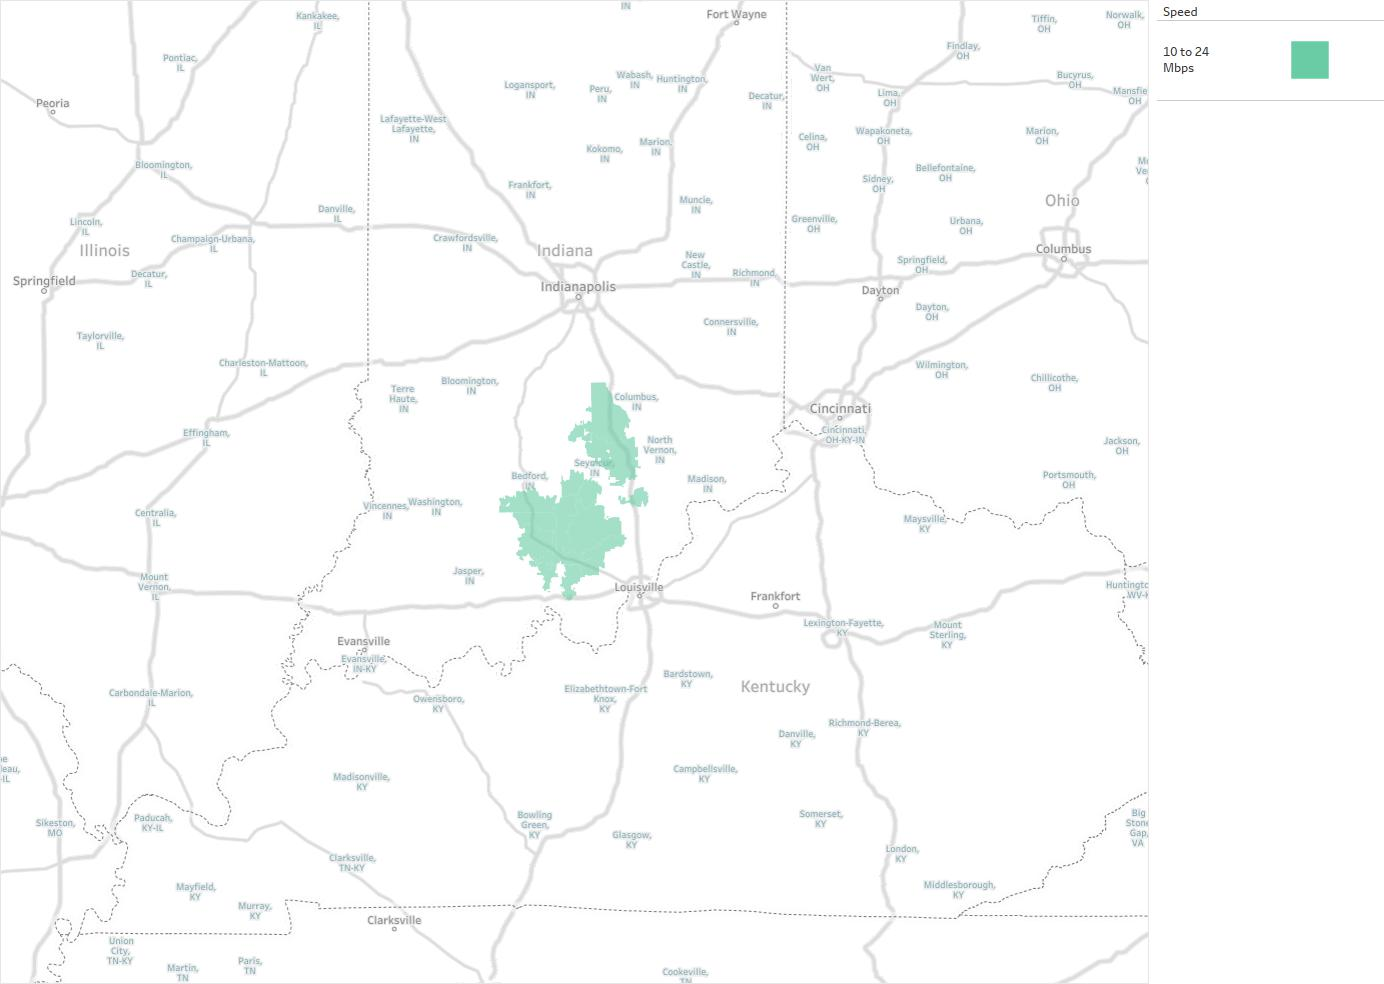 Blueriver Networking Services Availability Areas Amp Coverage Map